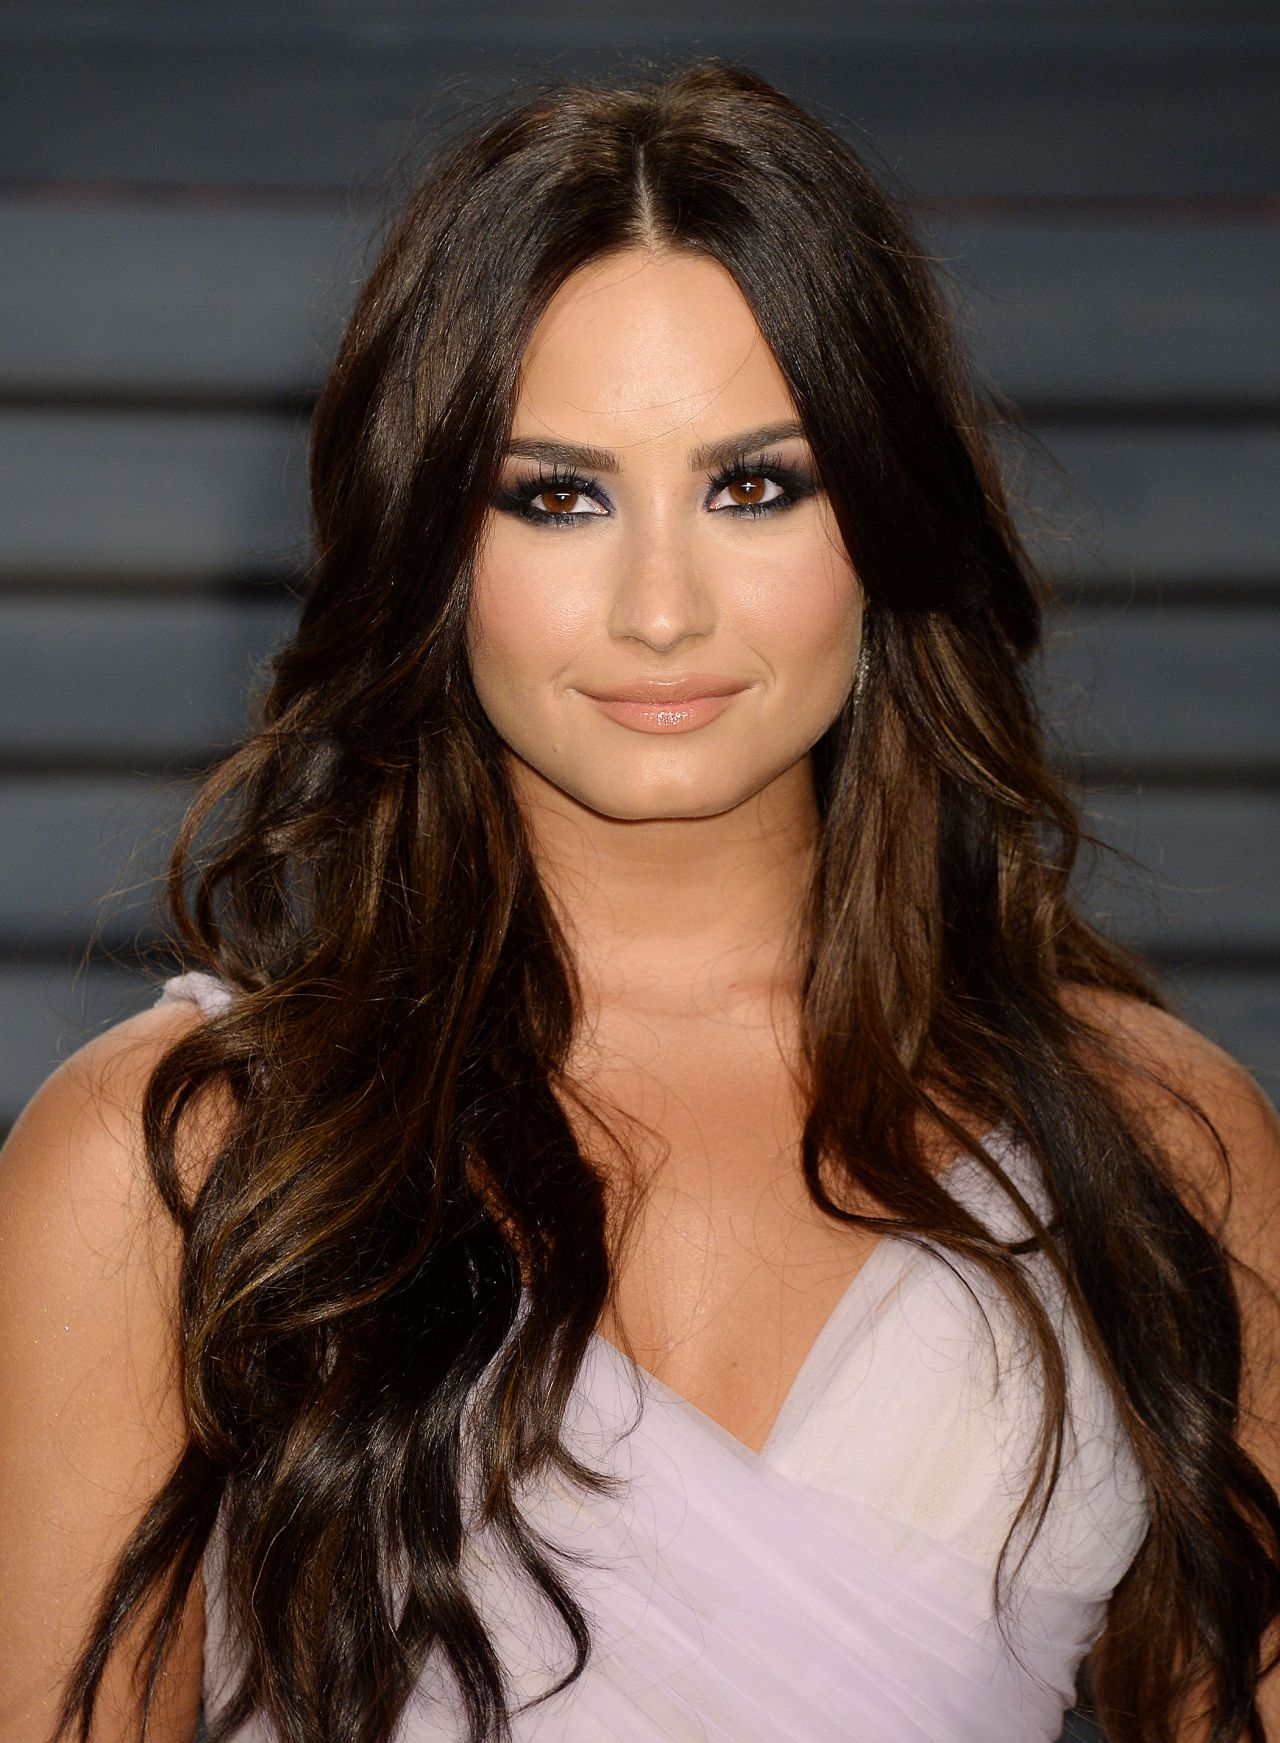 demi lovato - photo #1